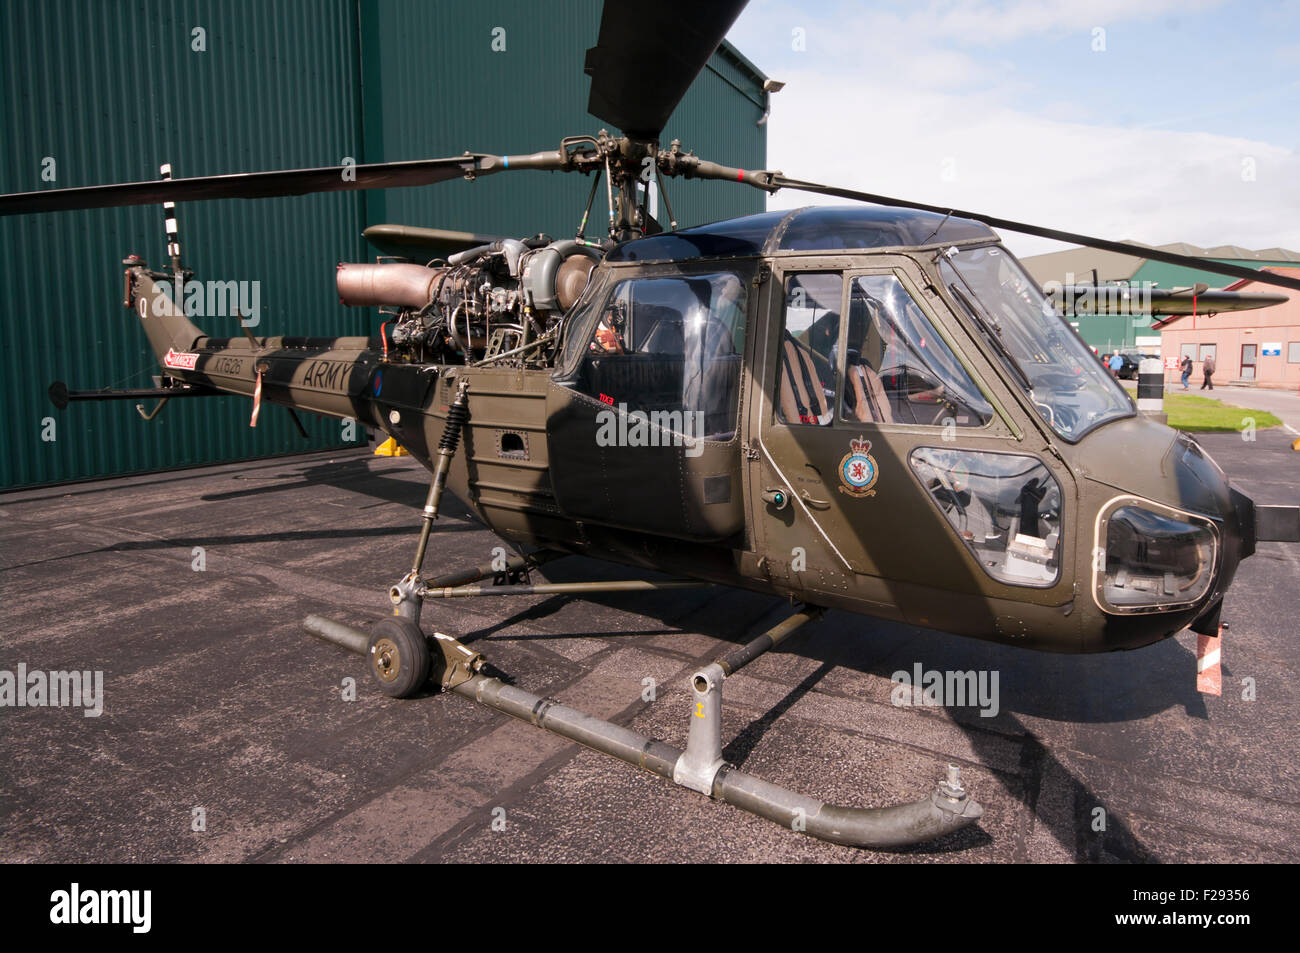 British Army Westland Scout AH MK1 Helicopter - Stock Image